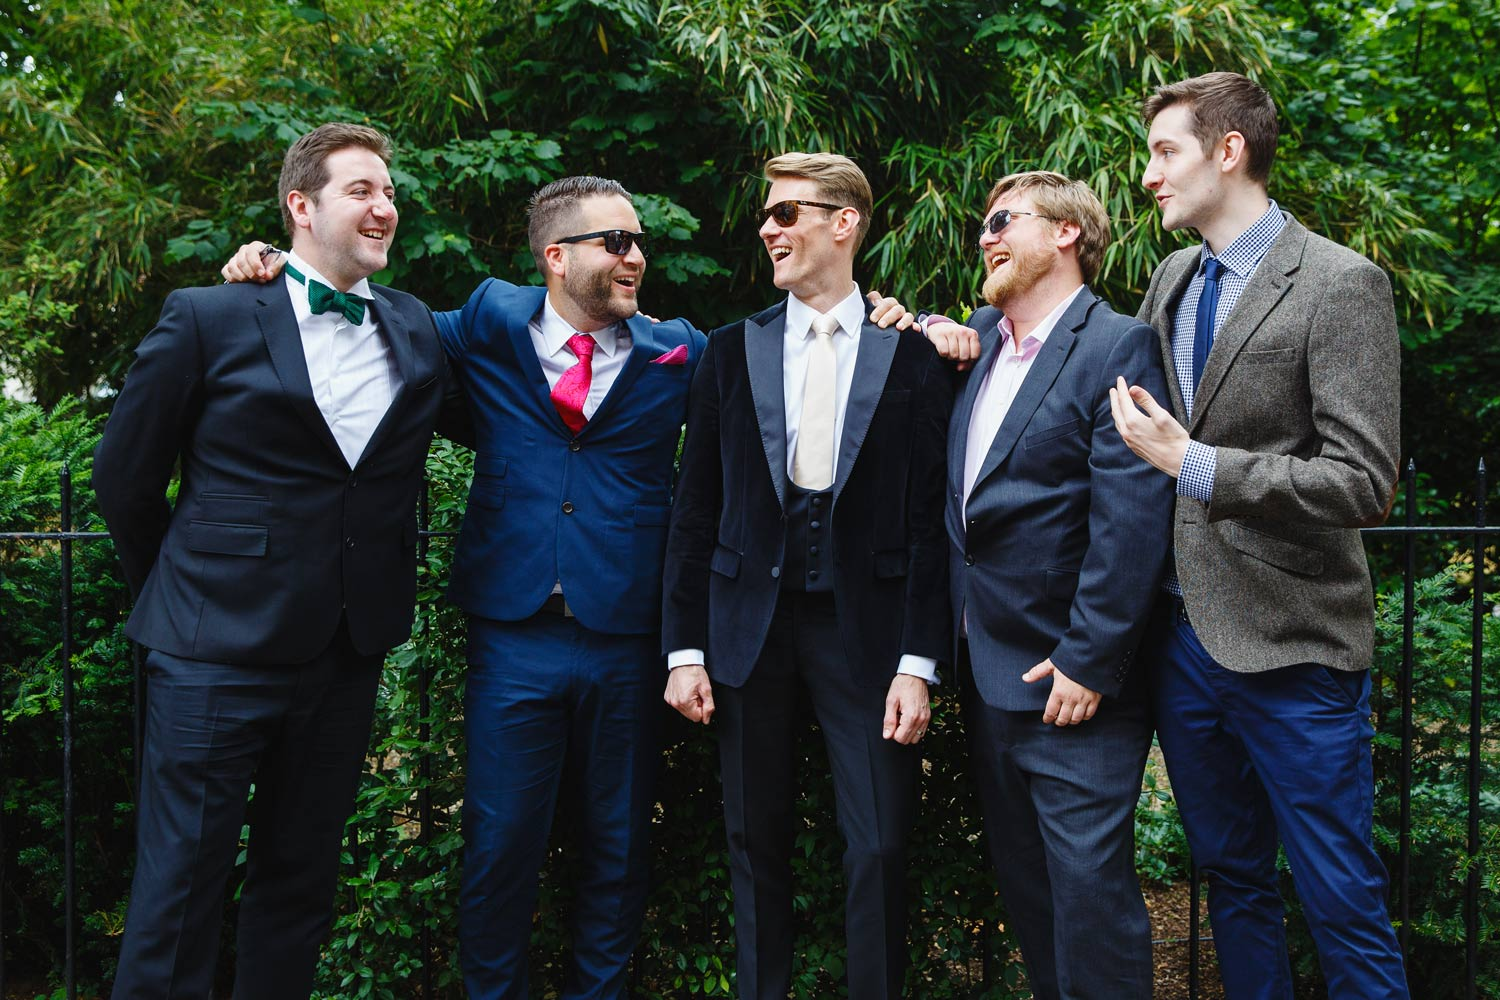 A groom poses with his groomsmen at the Roof Gardens in Kensington - London wedding photographer